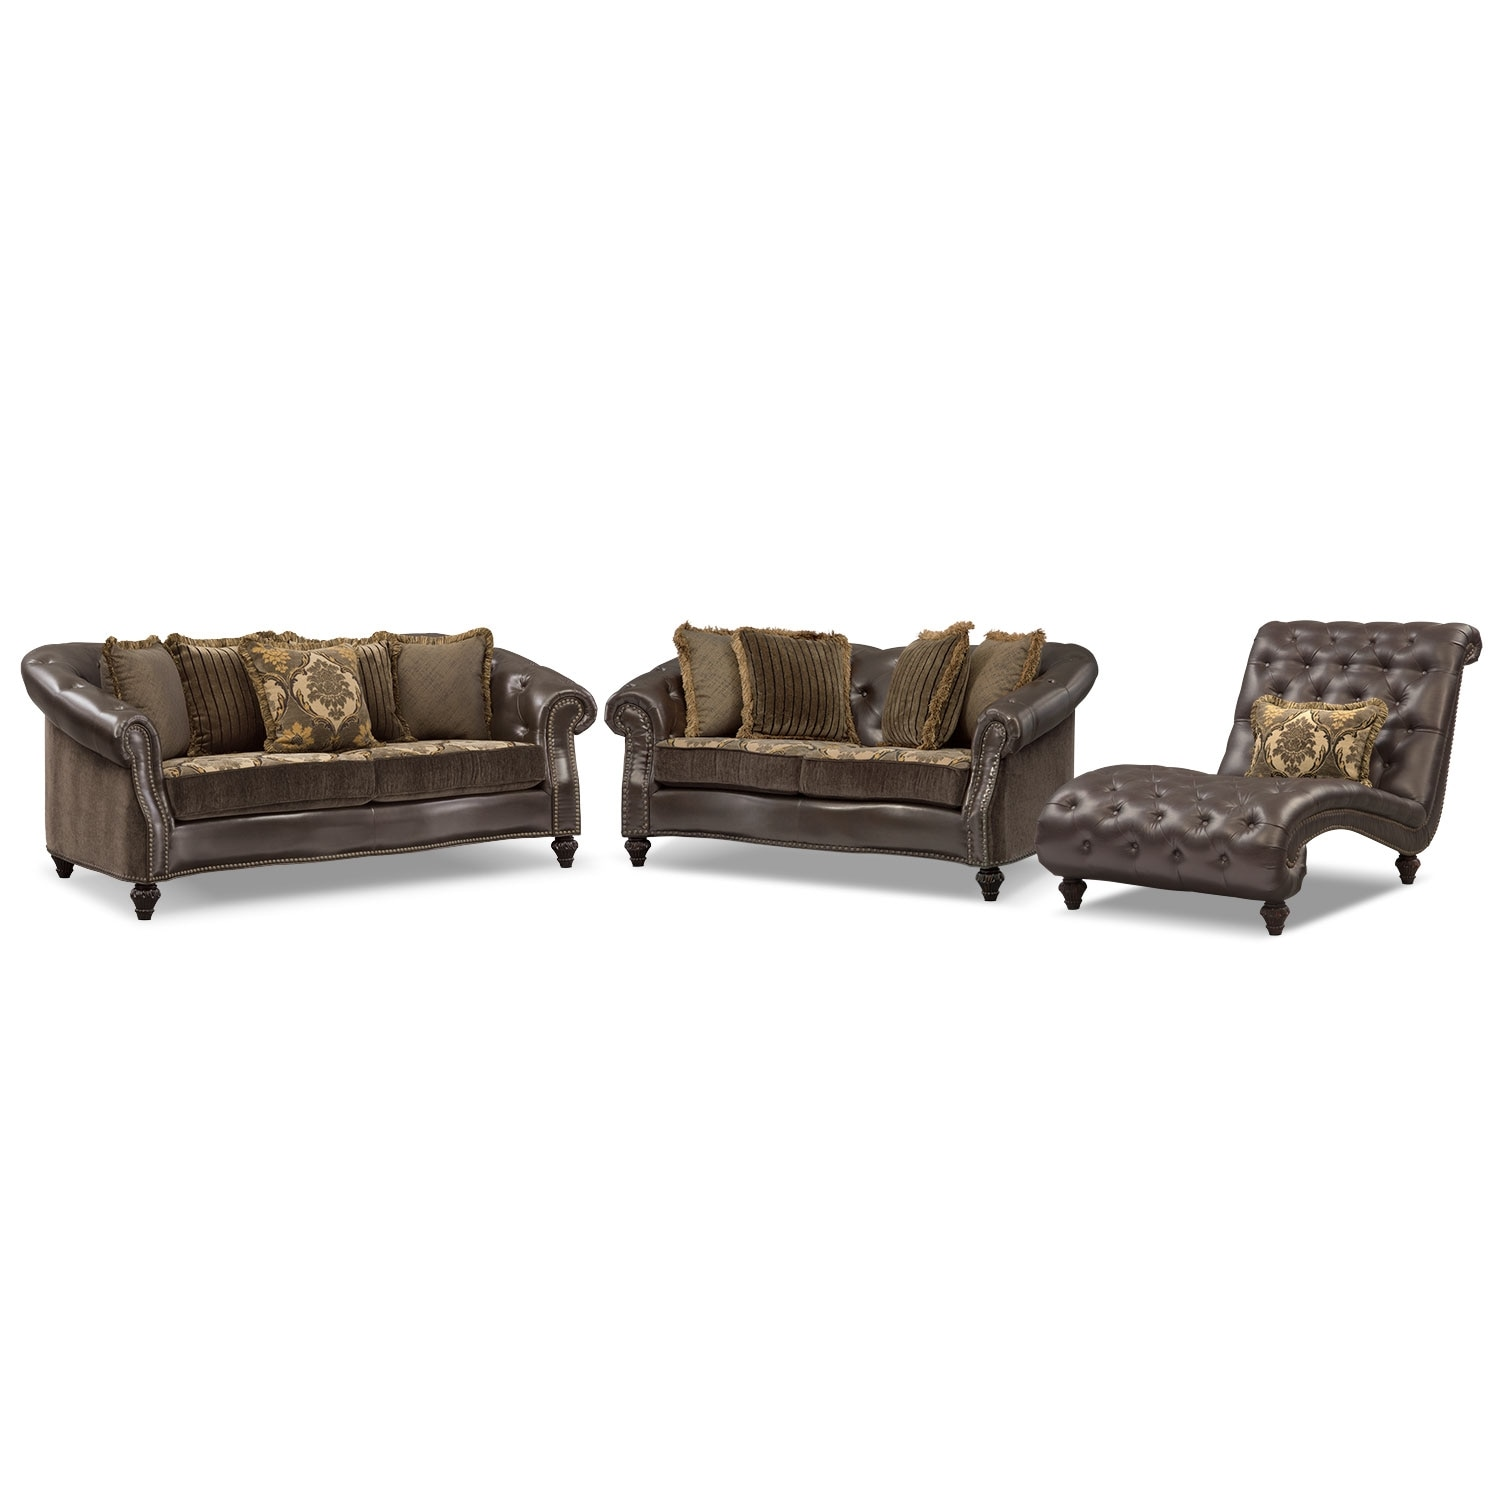 Living Room Furniture - Nicholas 3 Pc. Living Room w/Chaise